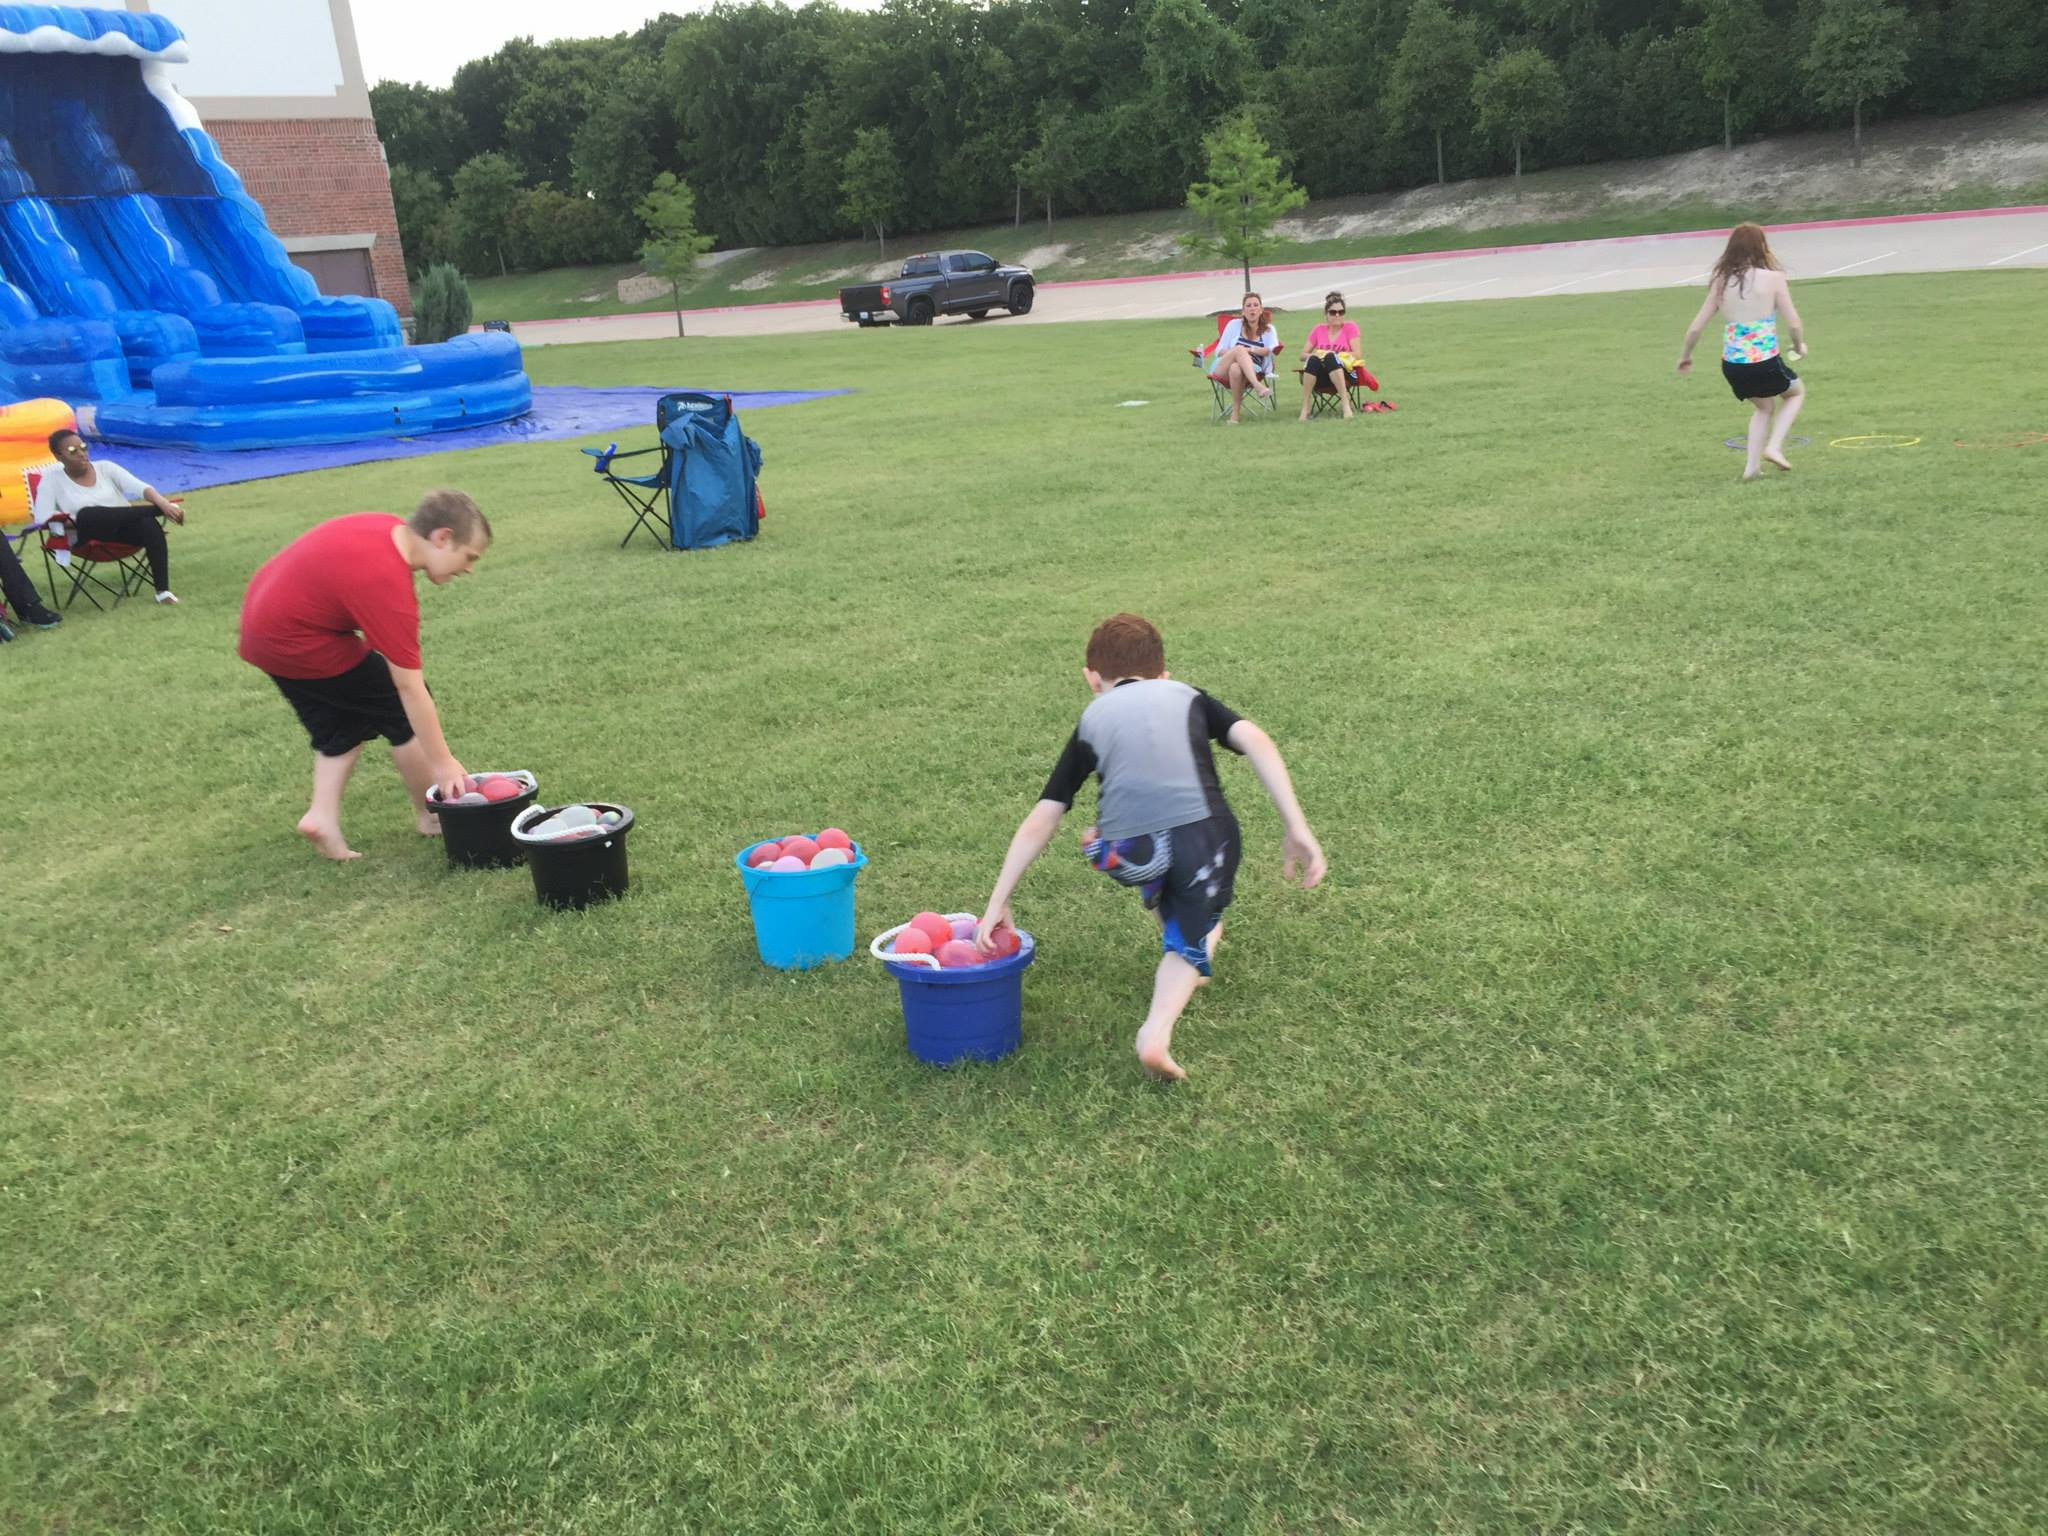 Water balloon relay races